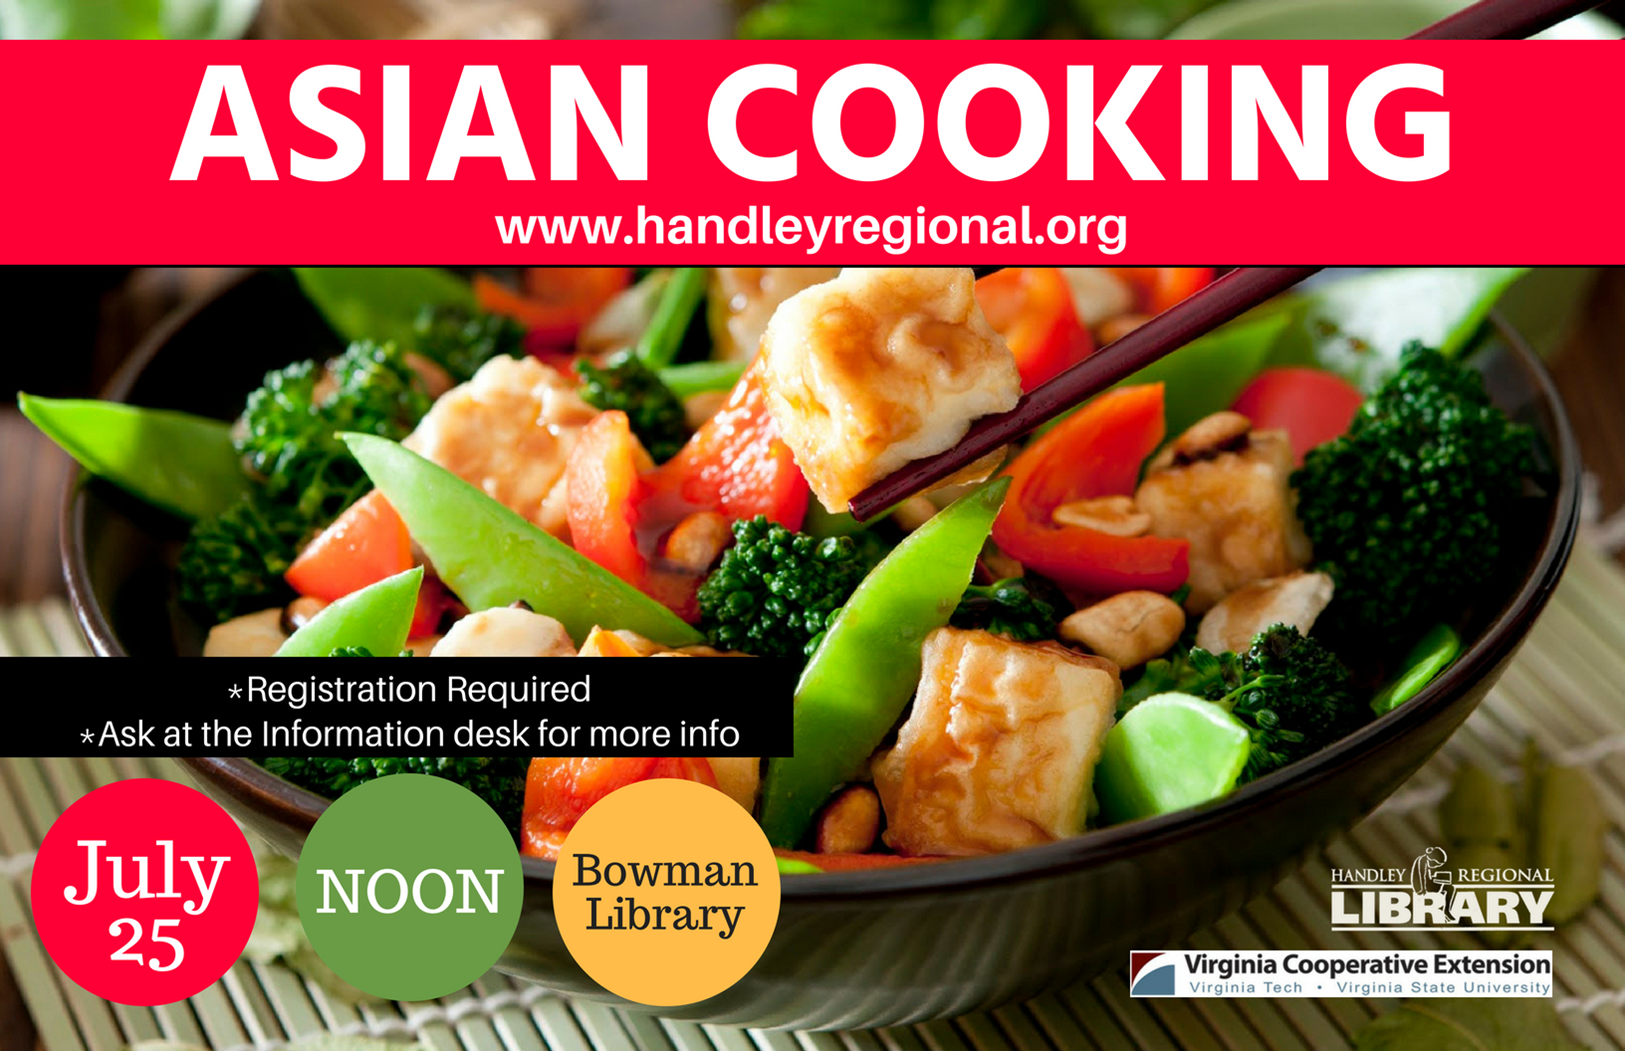 Lunch & Learn workshop: Asian Cooking